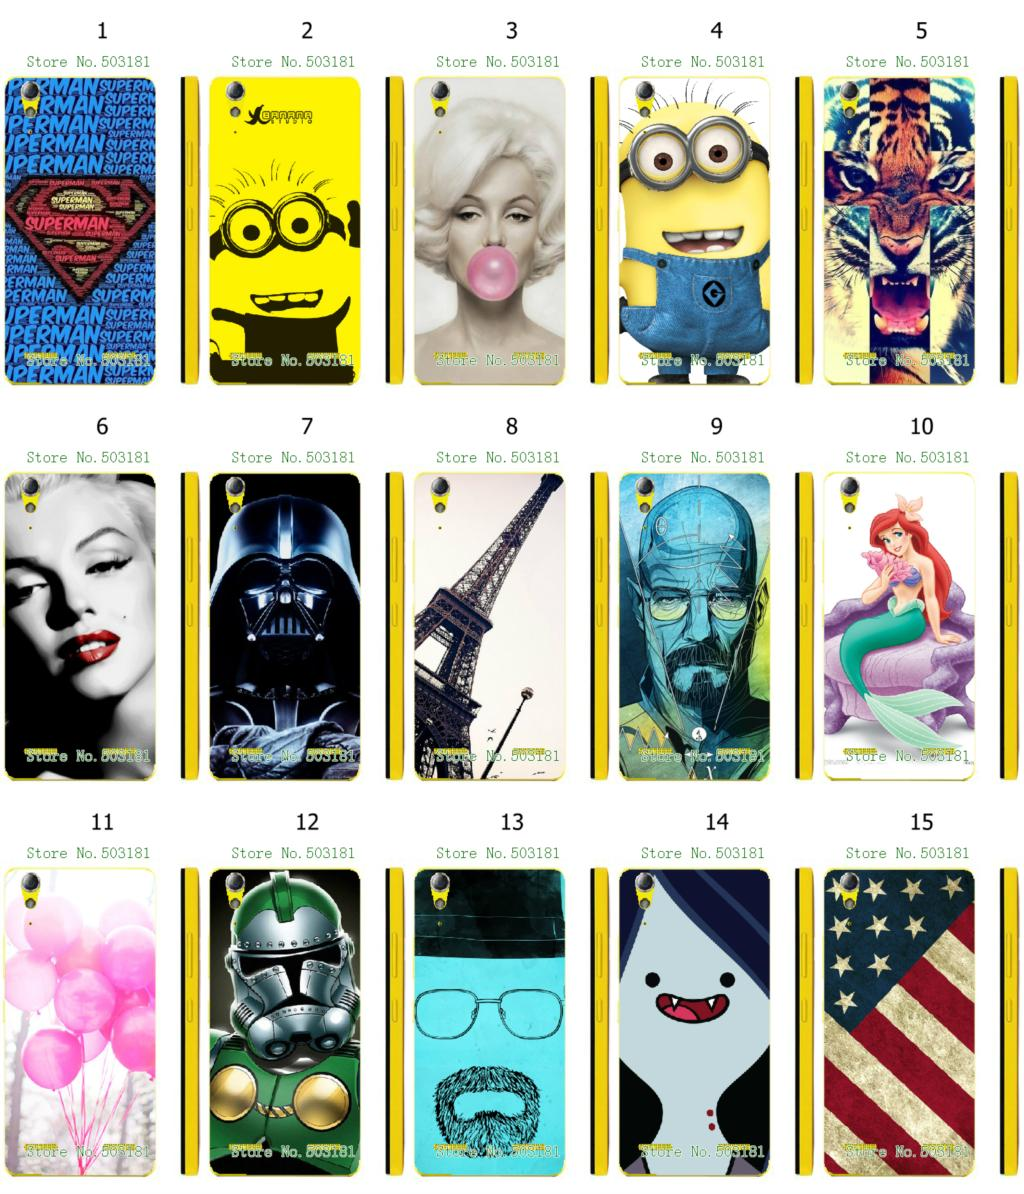 15designs new arrival hybird retail hot tiger Minions marilyn monroe star wars white hard cover cases